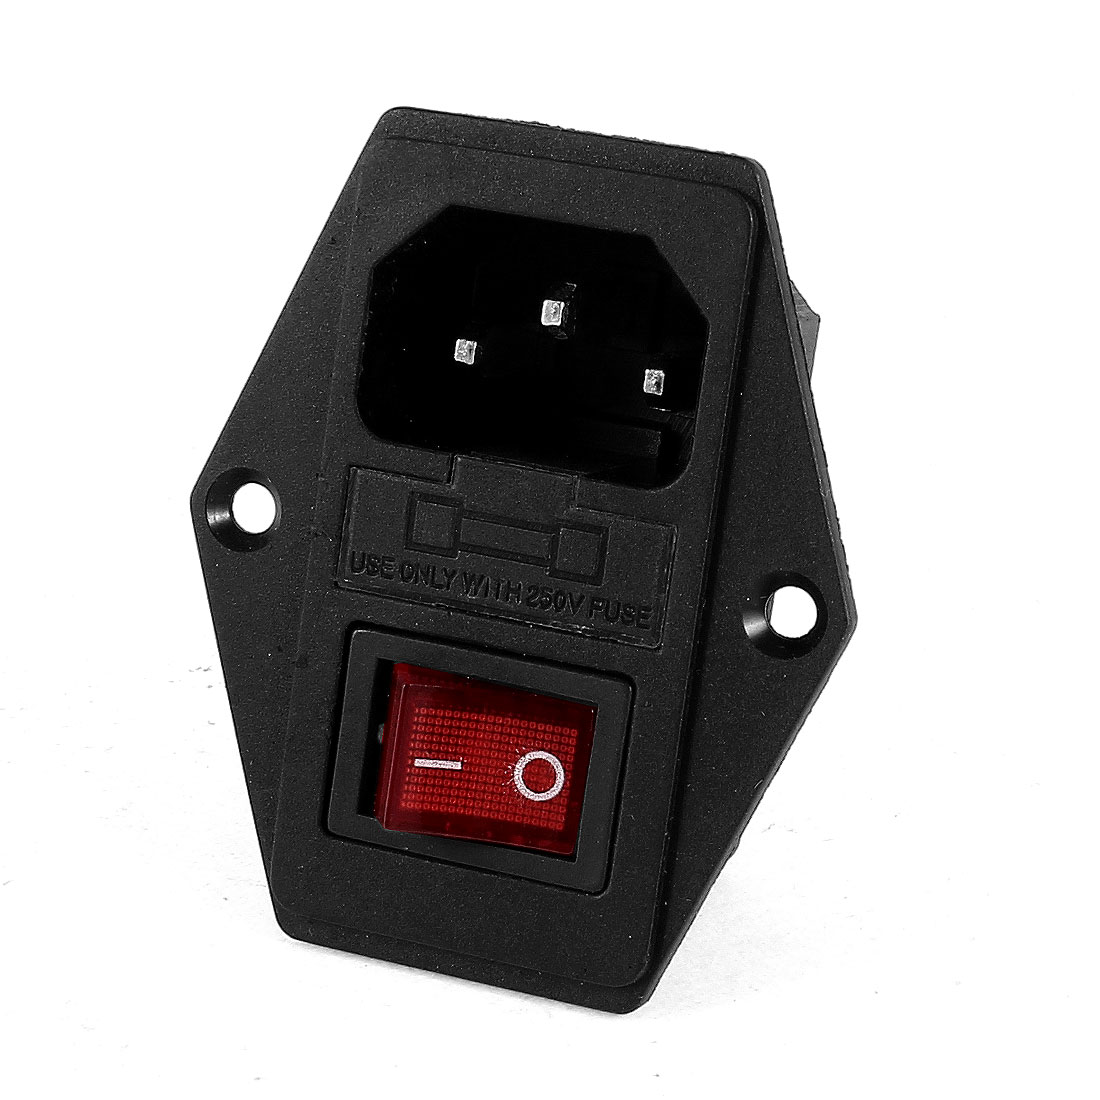 Indicator KCD1-104N DPST ON/OFF Rocker Switch 250V 10A w Fuse Holder w IEC320 C14 Power Inlet